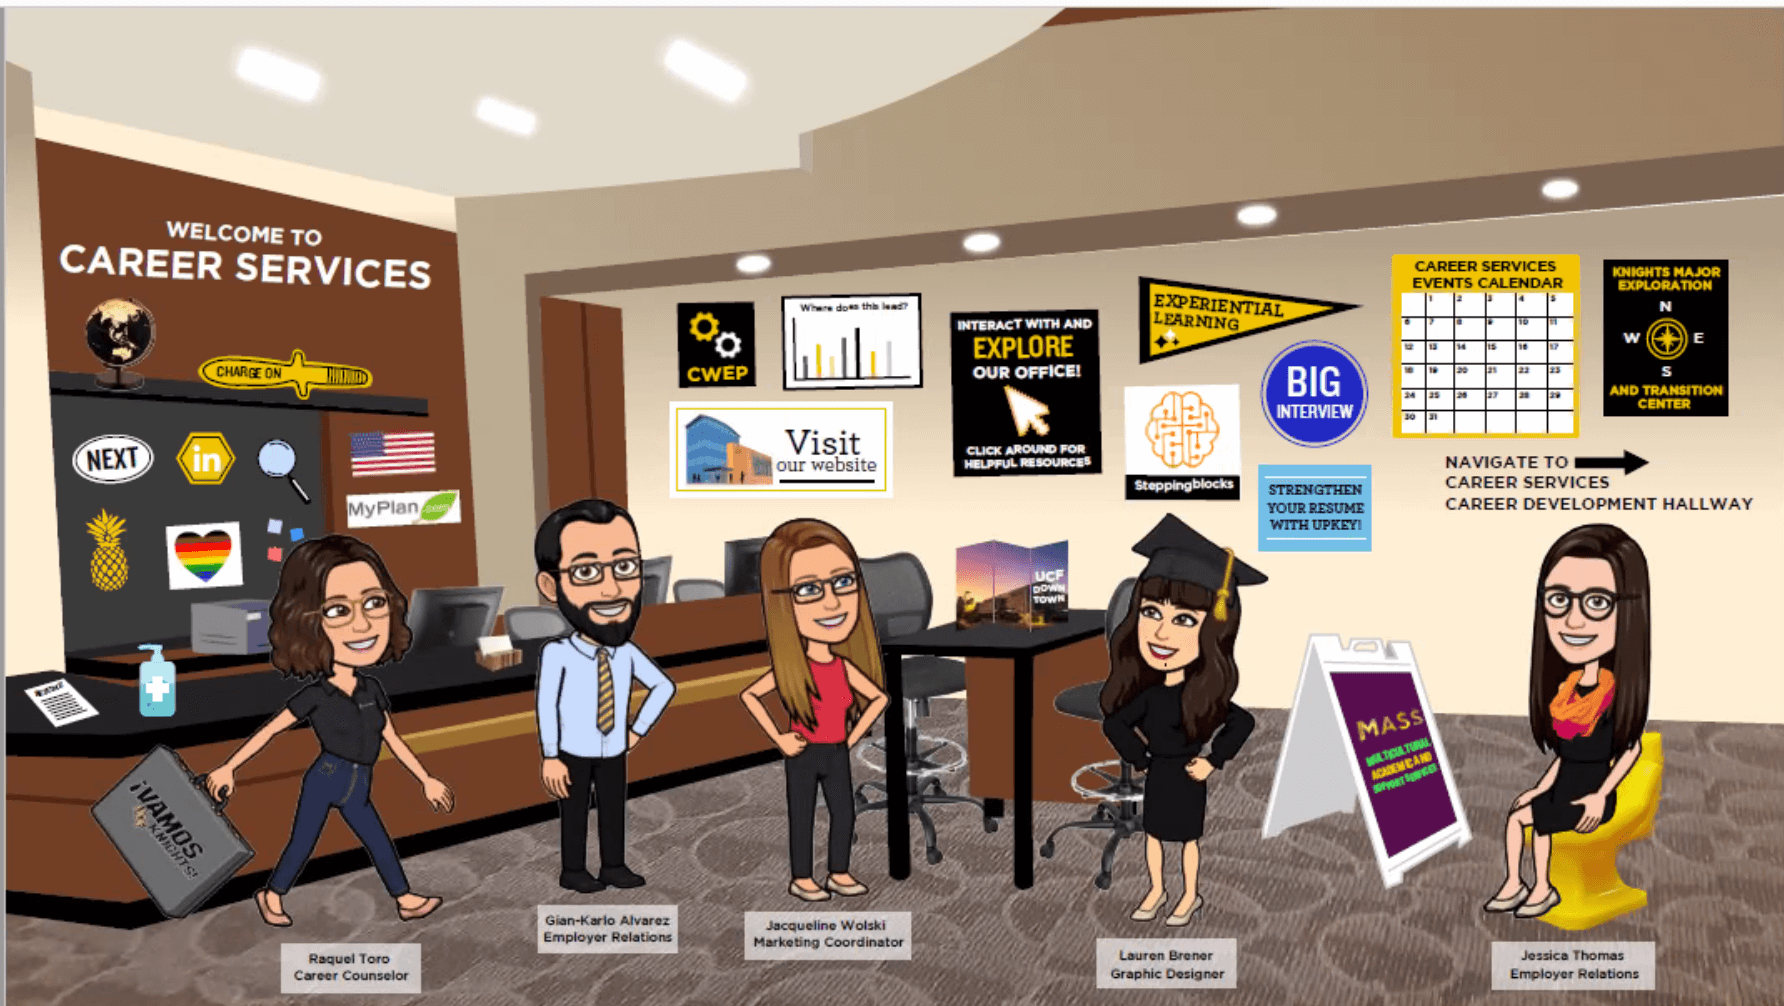 University of Central Florida's Virtual Career Services